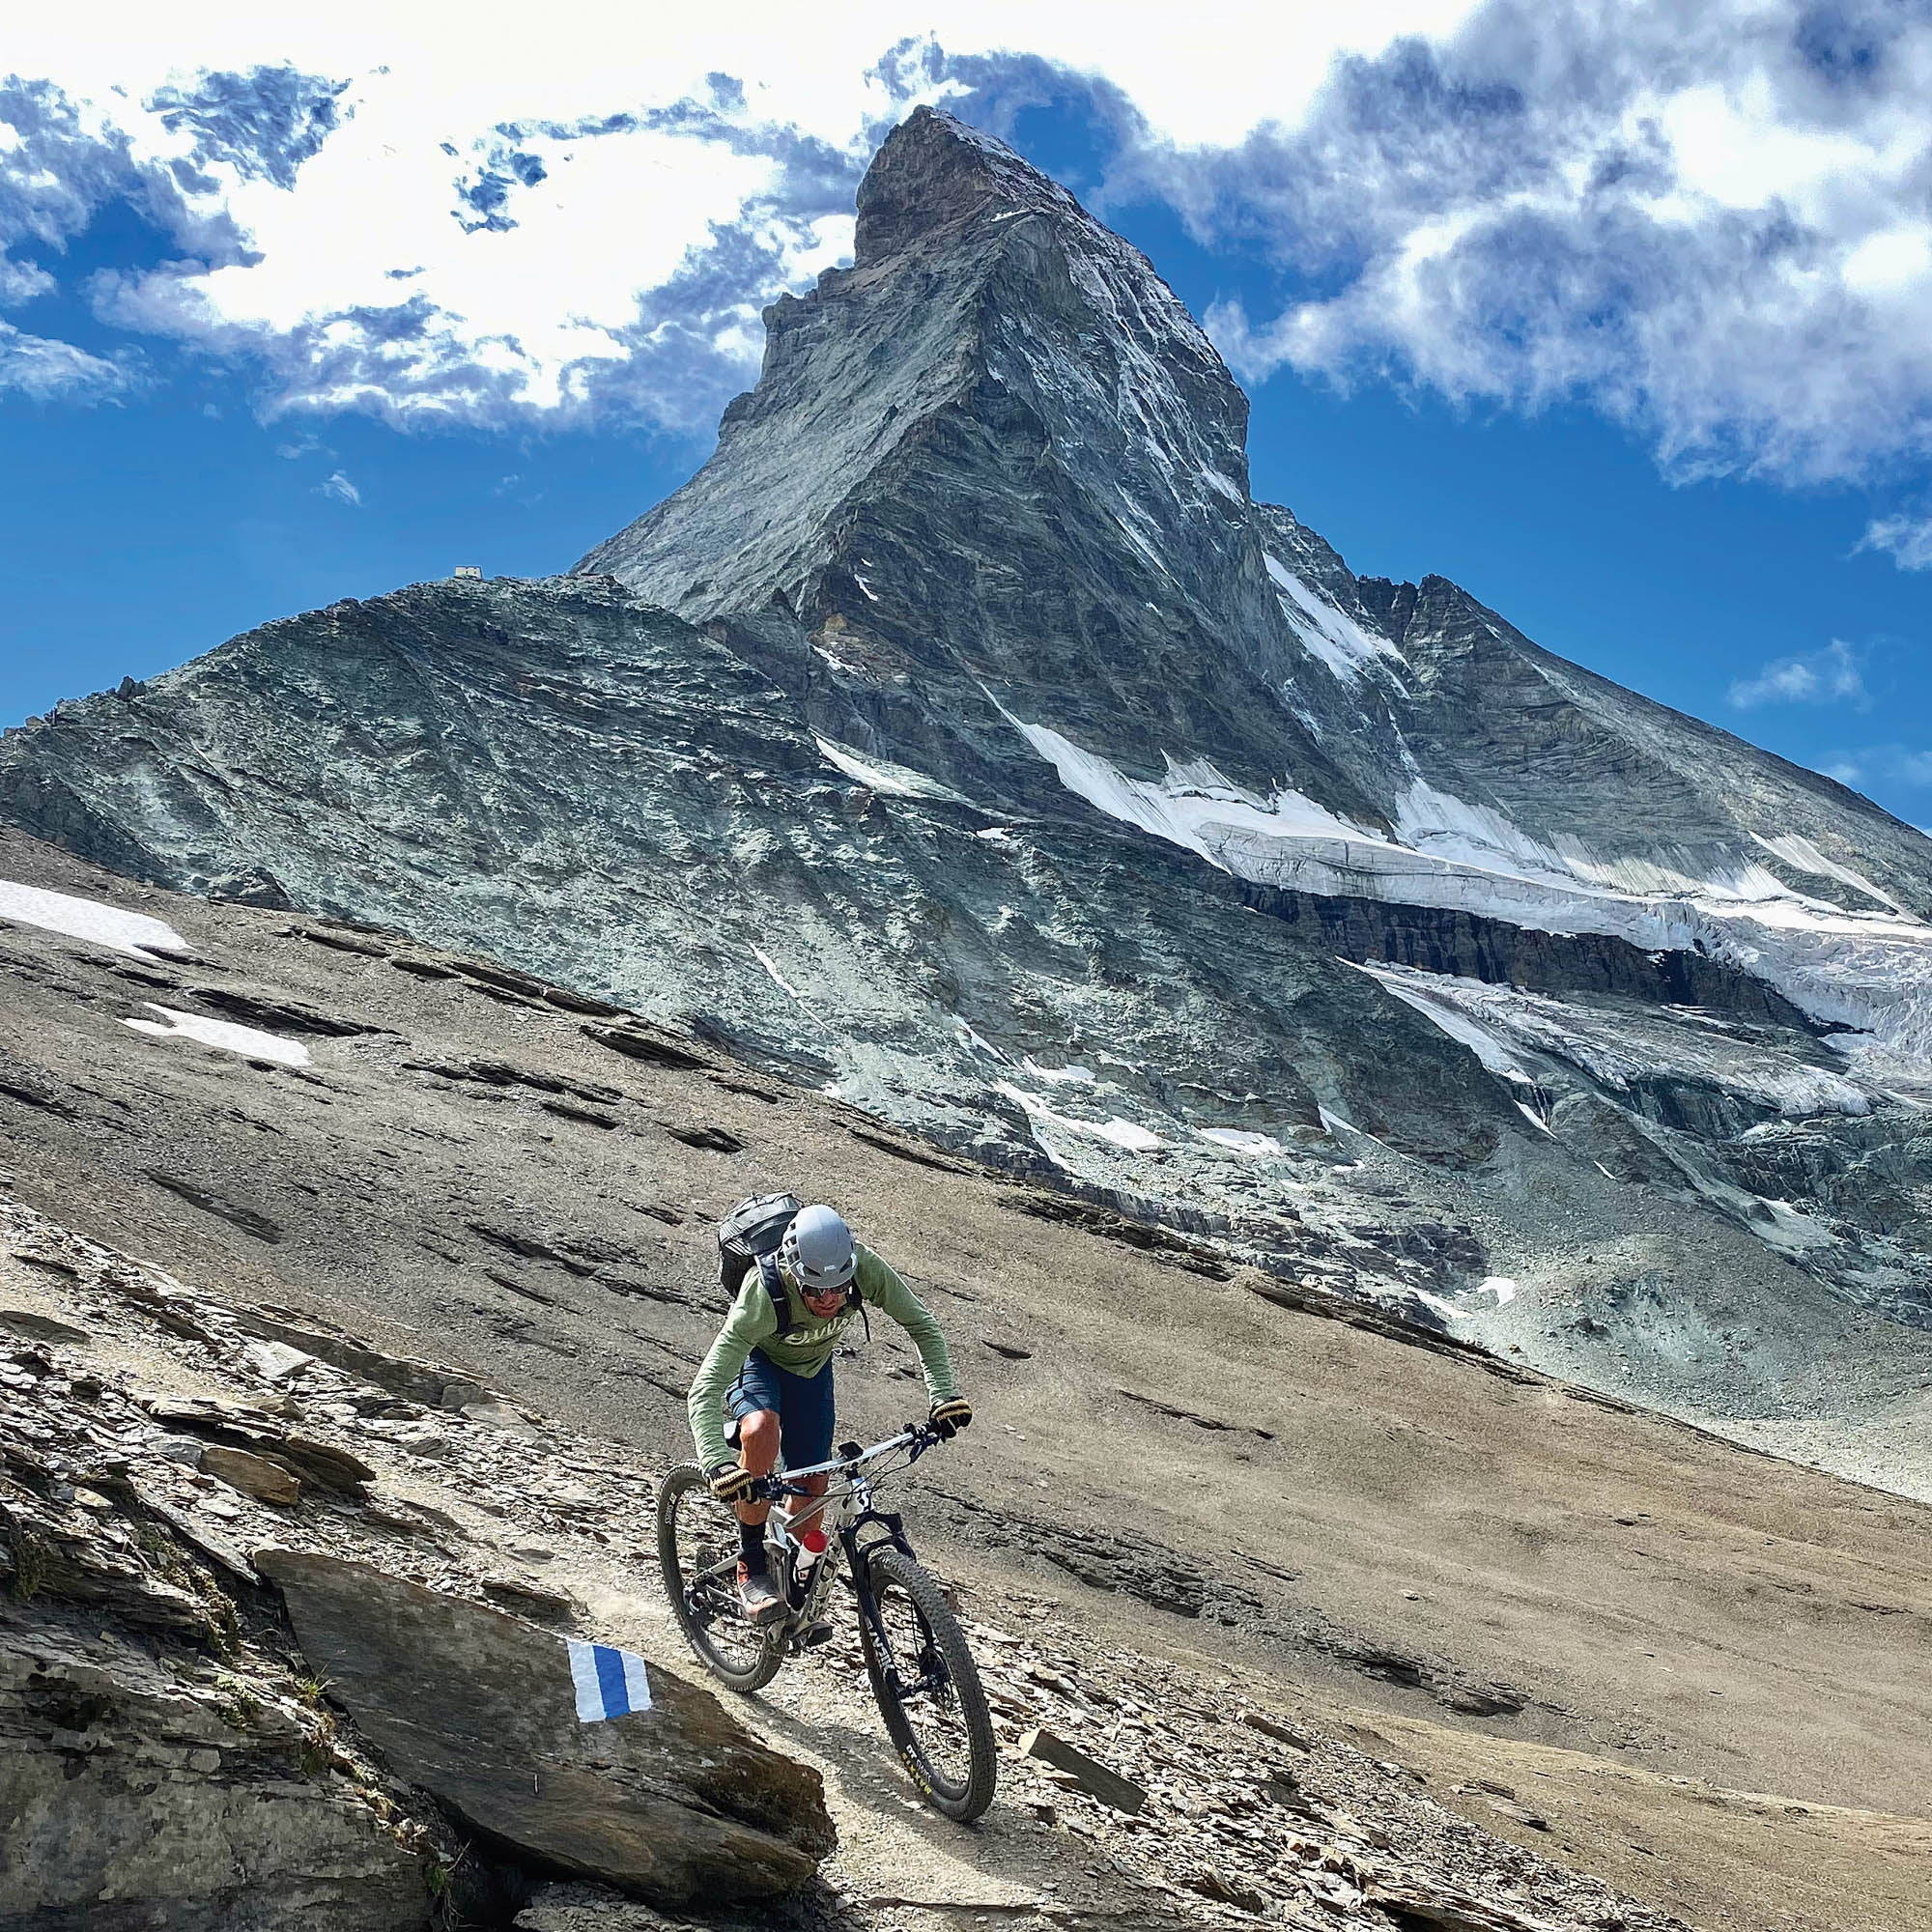 Frischi riding down a slope in front of the Matterhorn